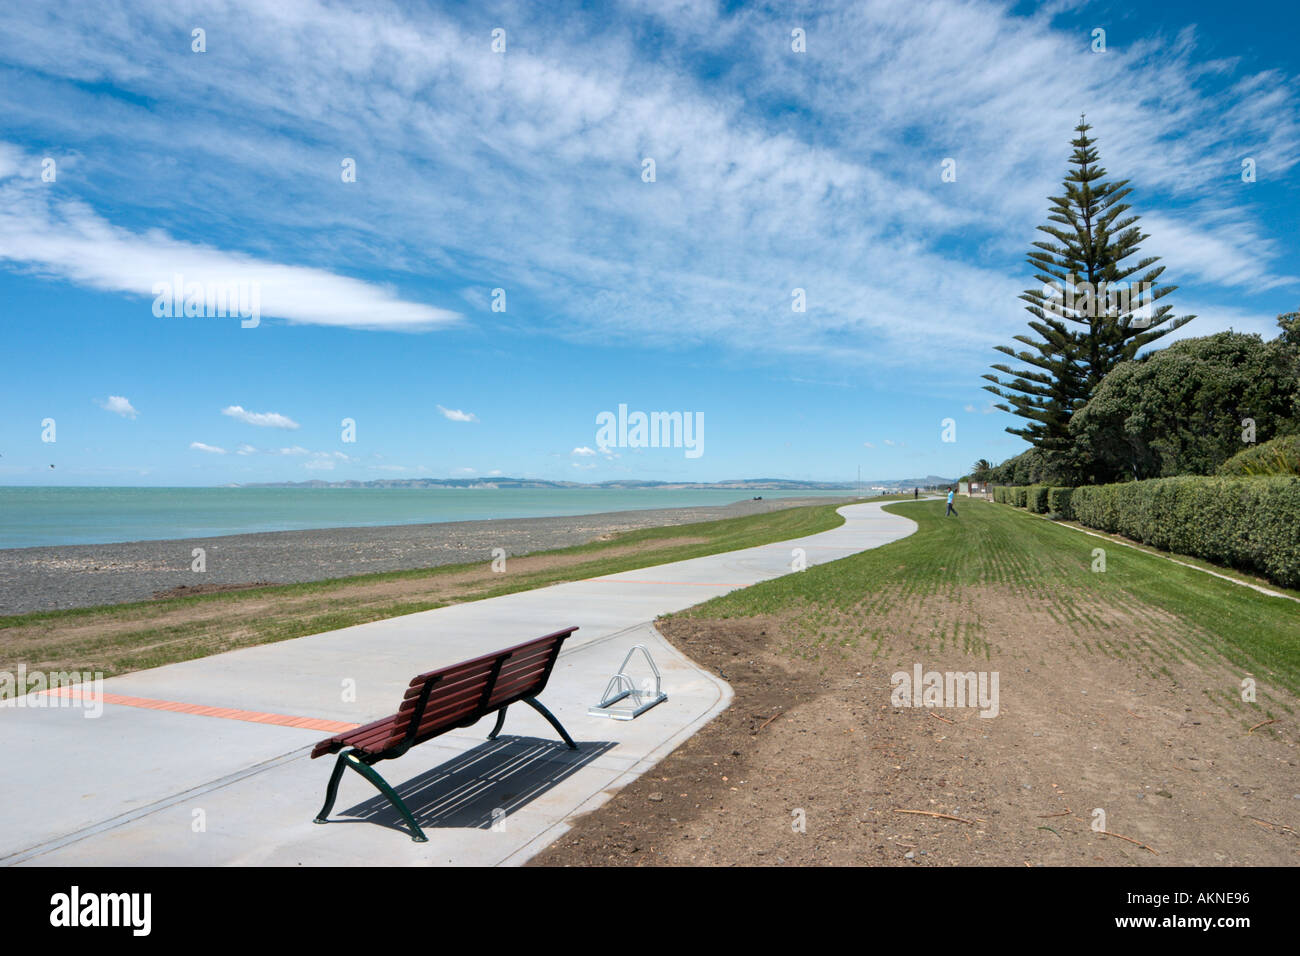 Seafront at Napier, North Island, New Zealand - Stock Image